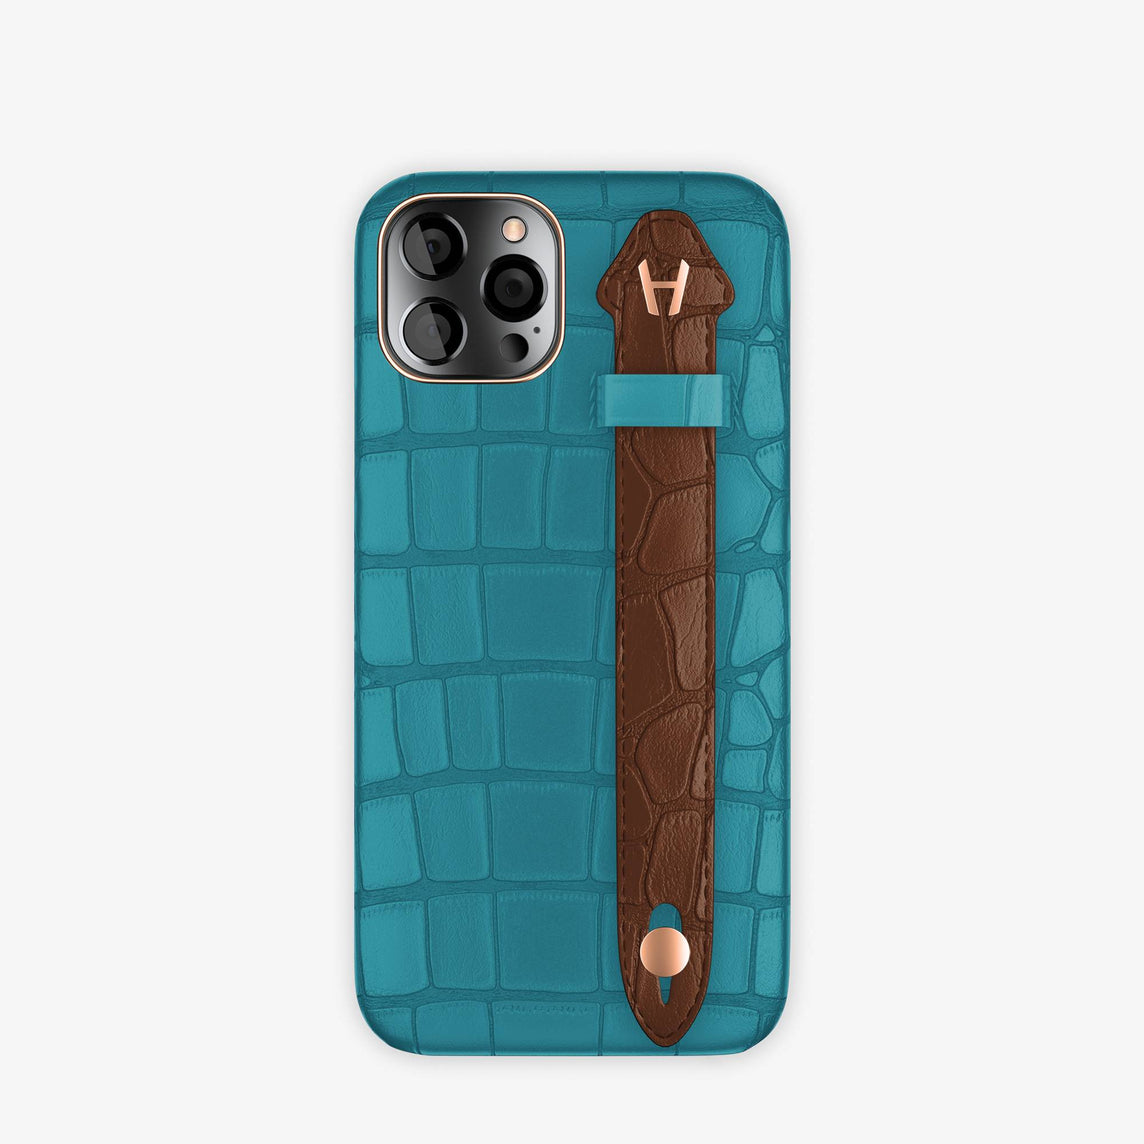 Alligator Side Finger Case iPhone 12 & iPhone 12 Pro | Blue Teal/Brown Chocolat -Rose Gold